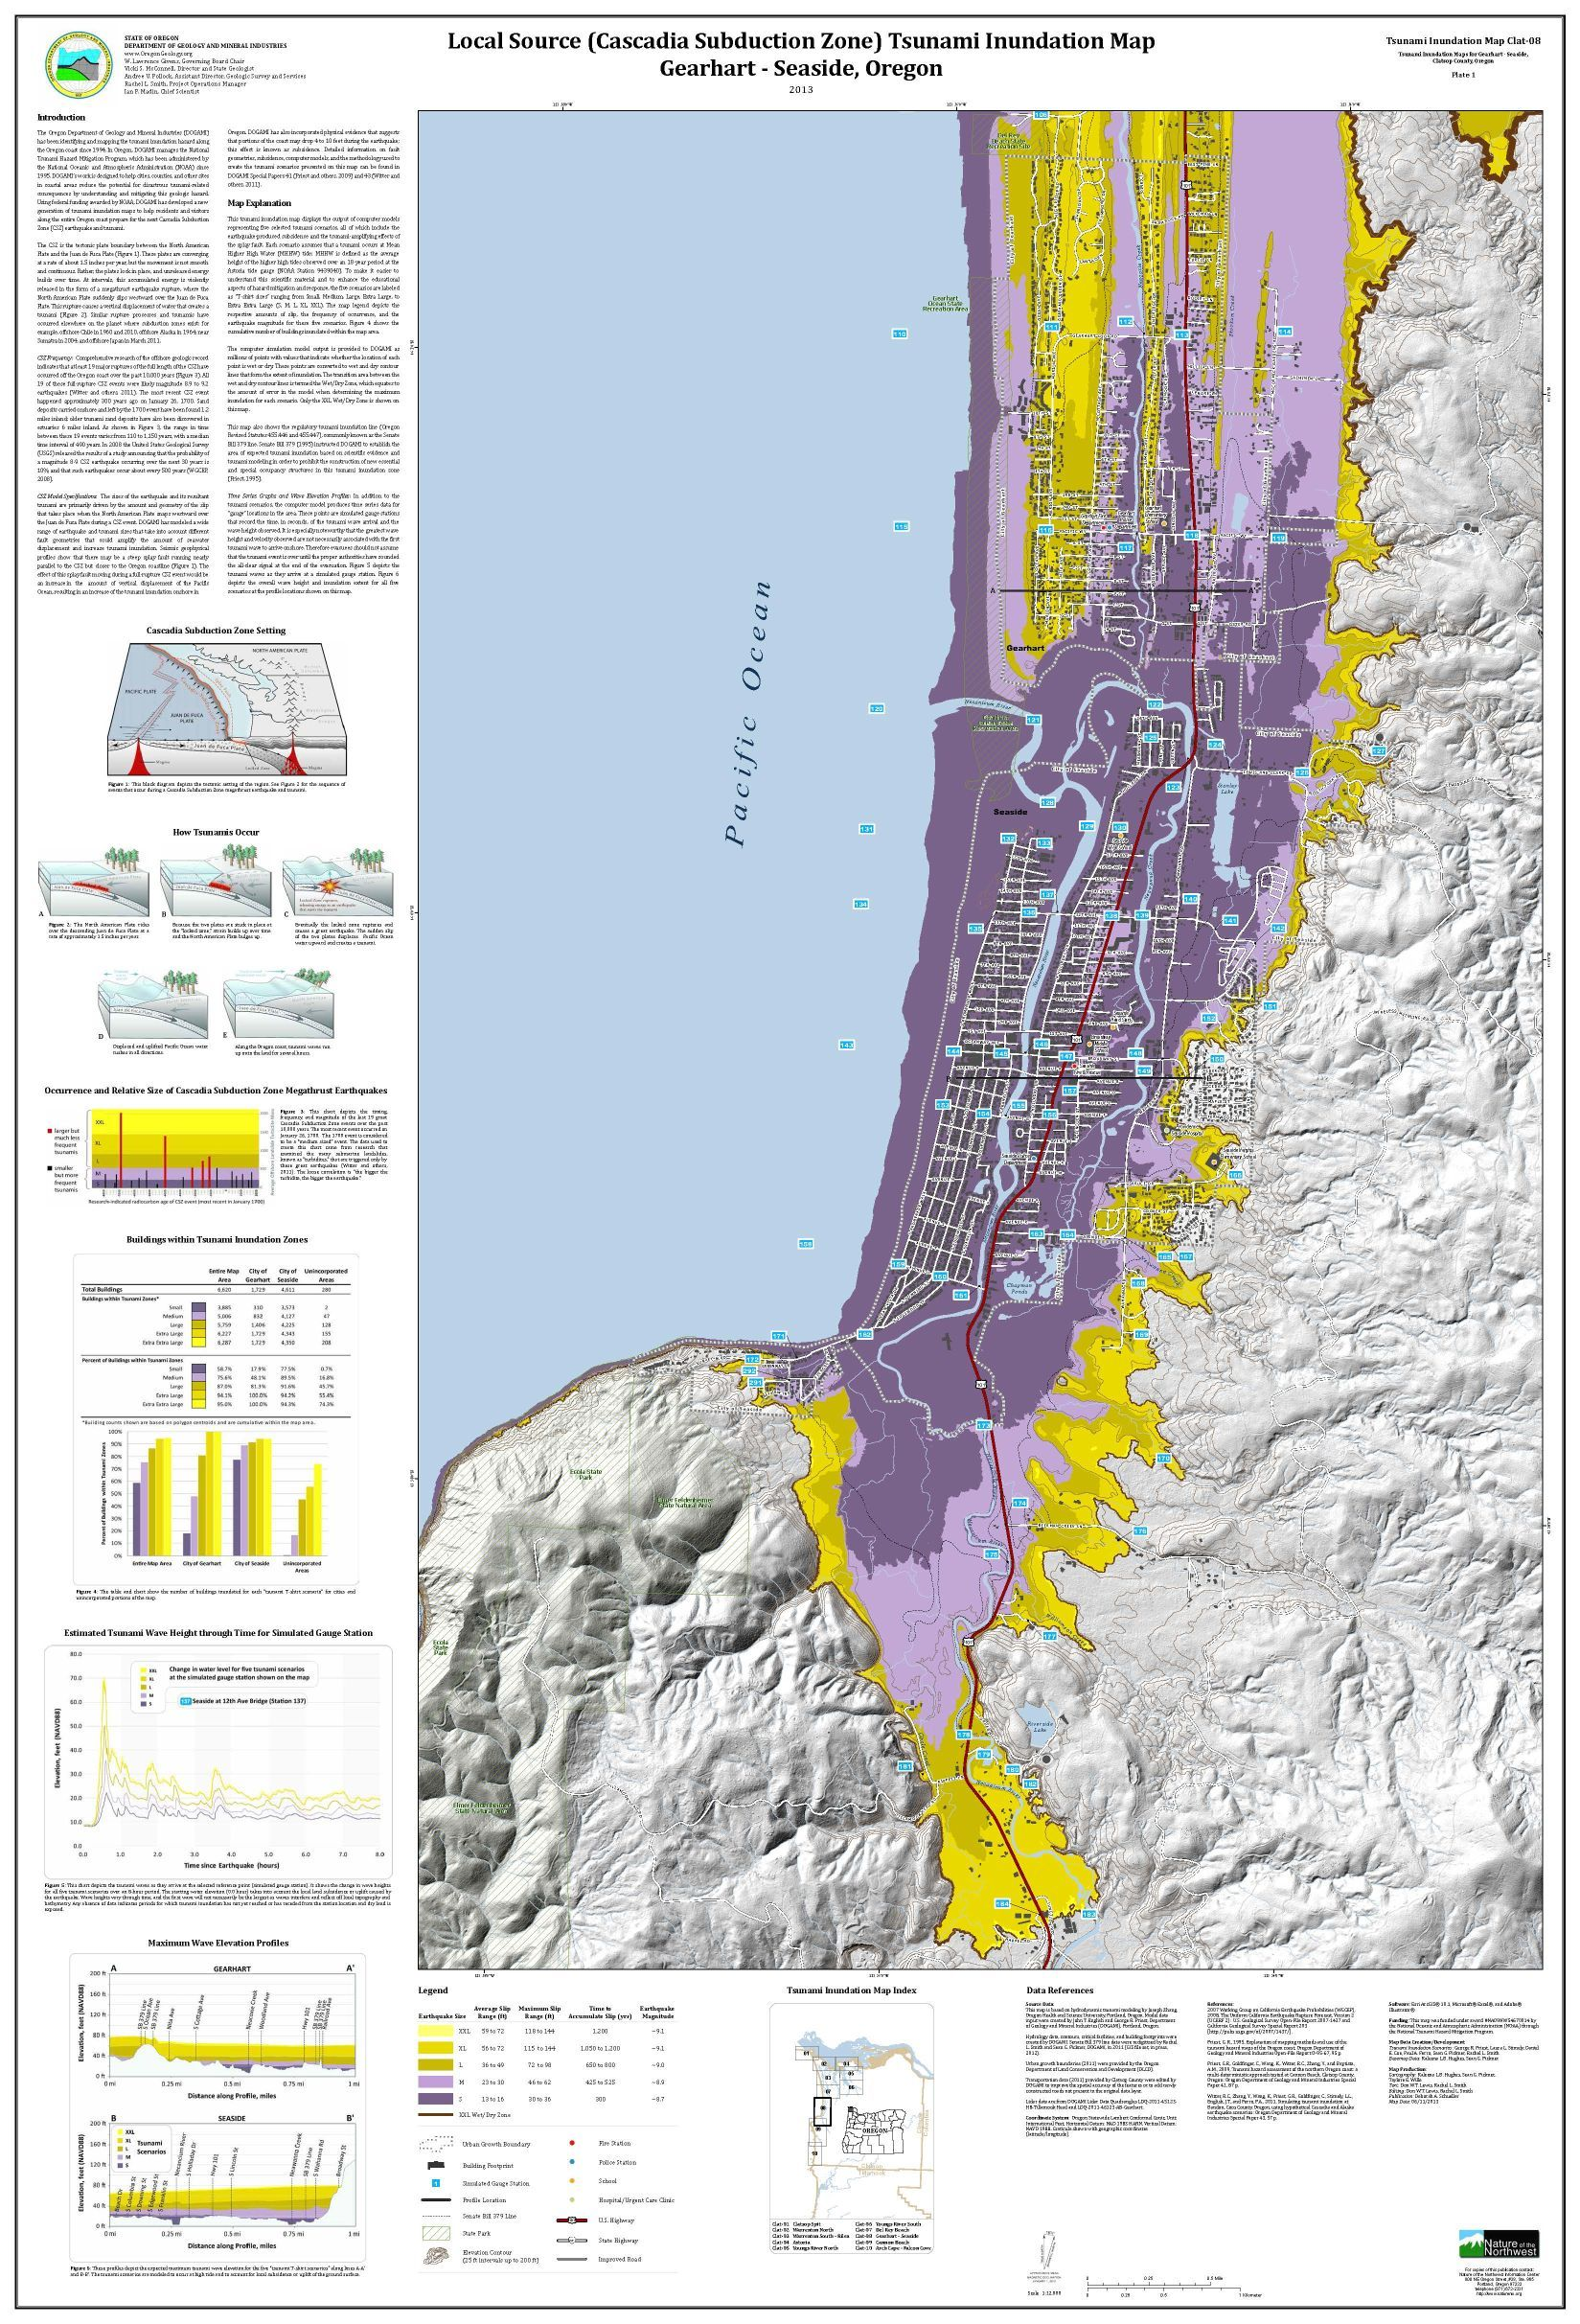 Tsunami inundation maps for Gearhart - Seaside, Clatsop County ... on